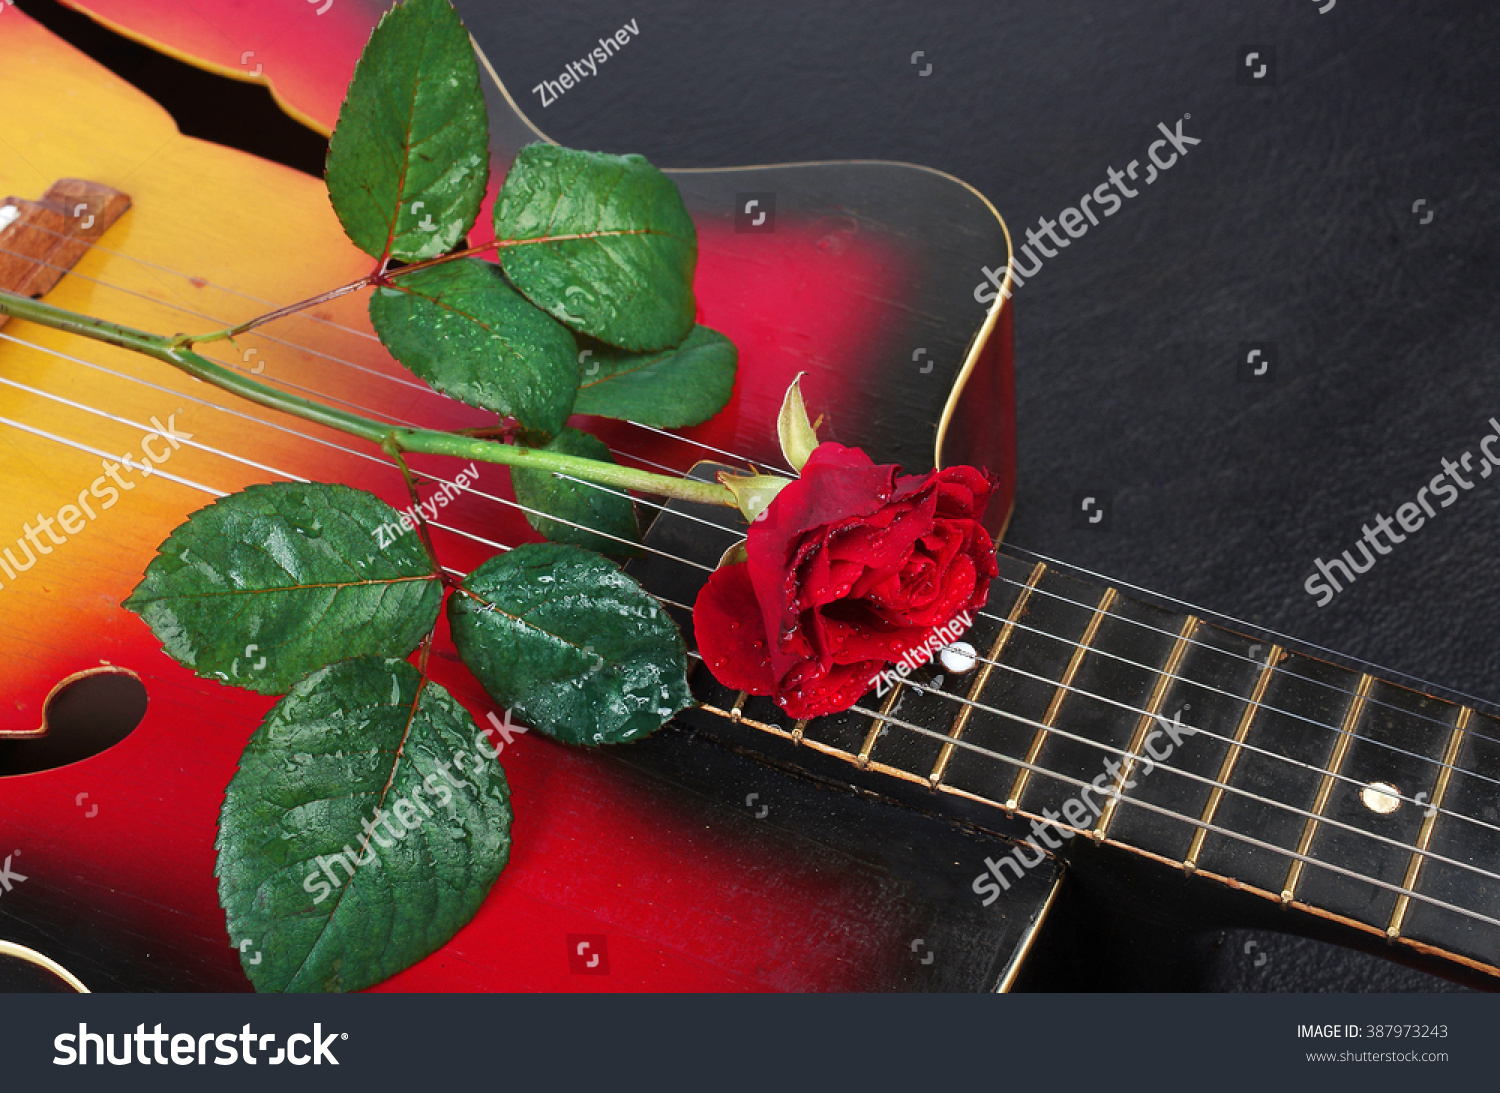 Acoustic Guitar And Red Rose